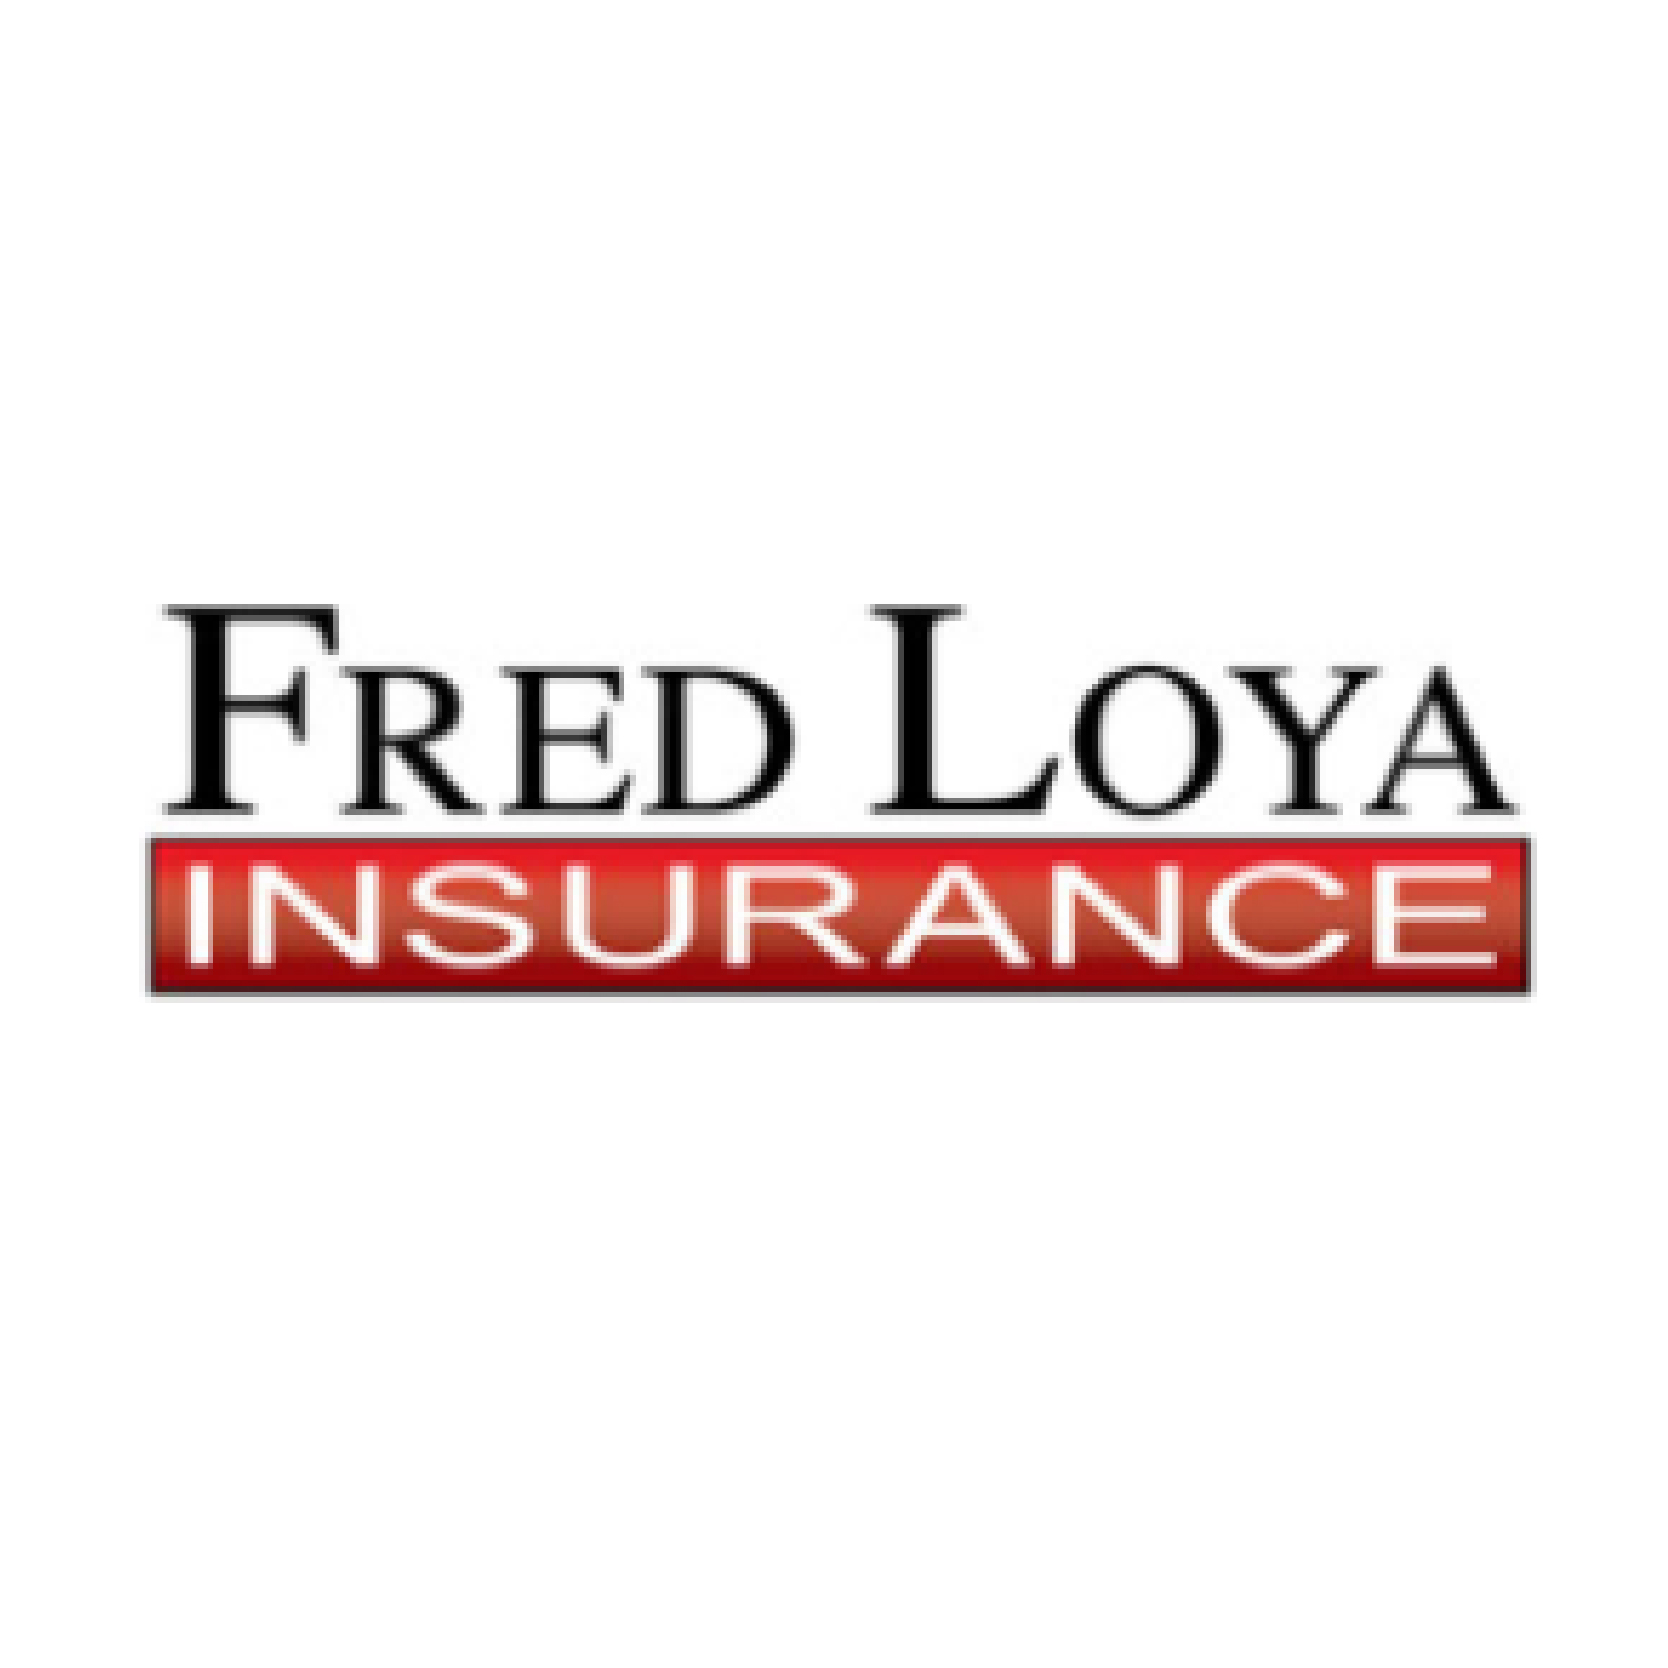 Fred Loya/Rodney D. Young Insurance